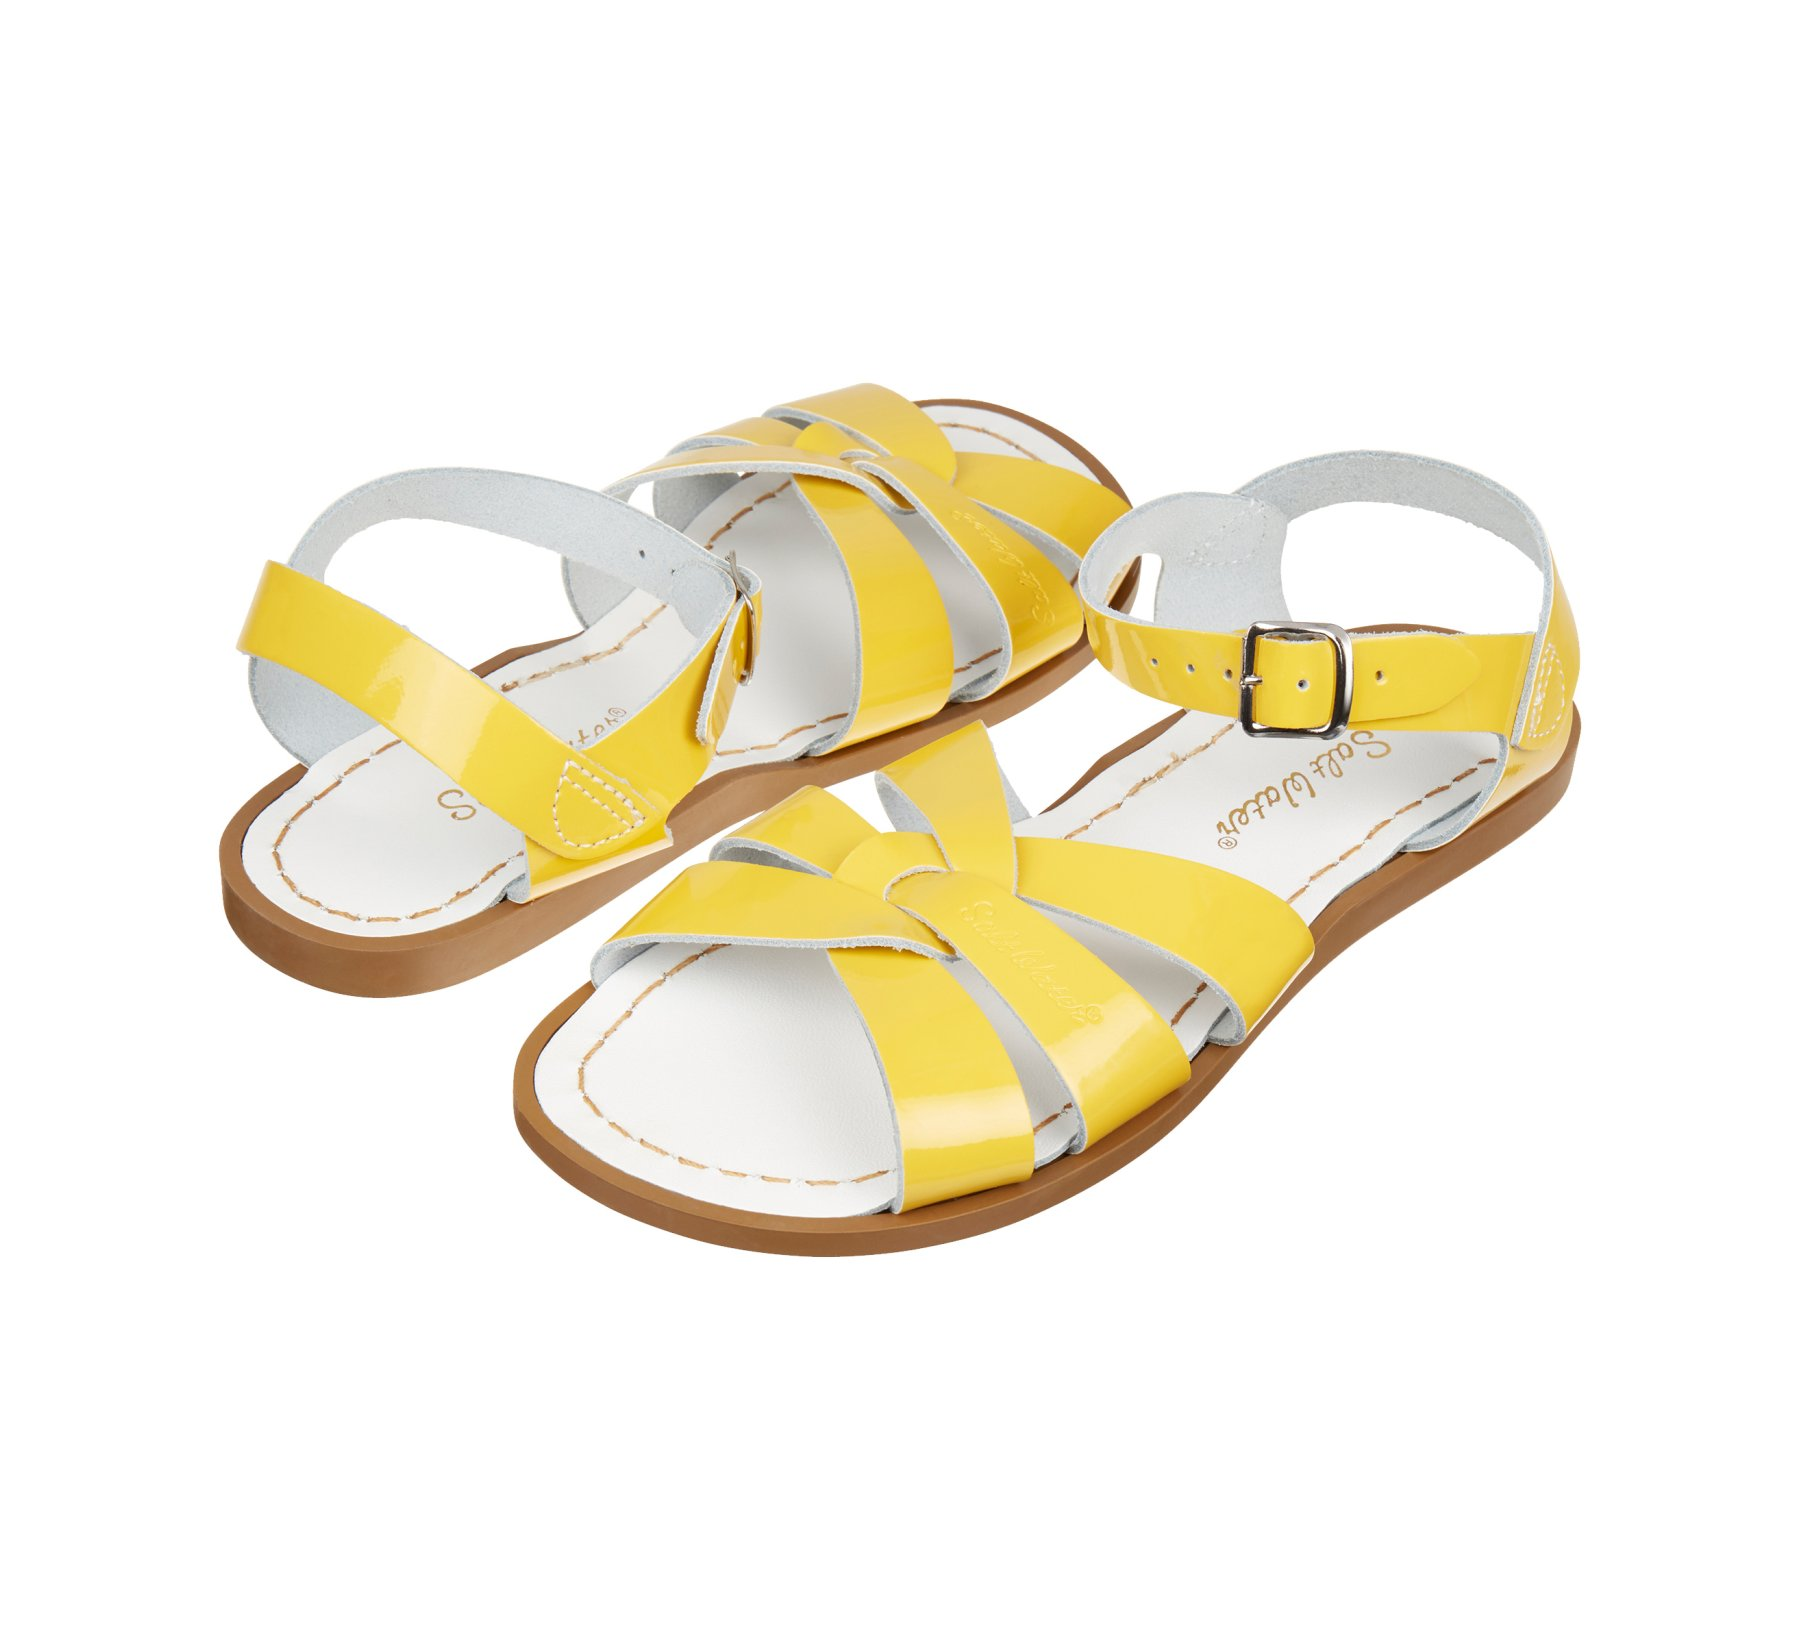 Original Shiny Yellow - Salt Water Sandals